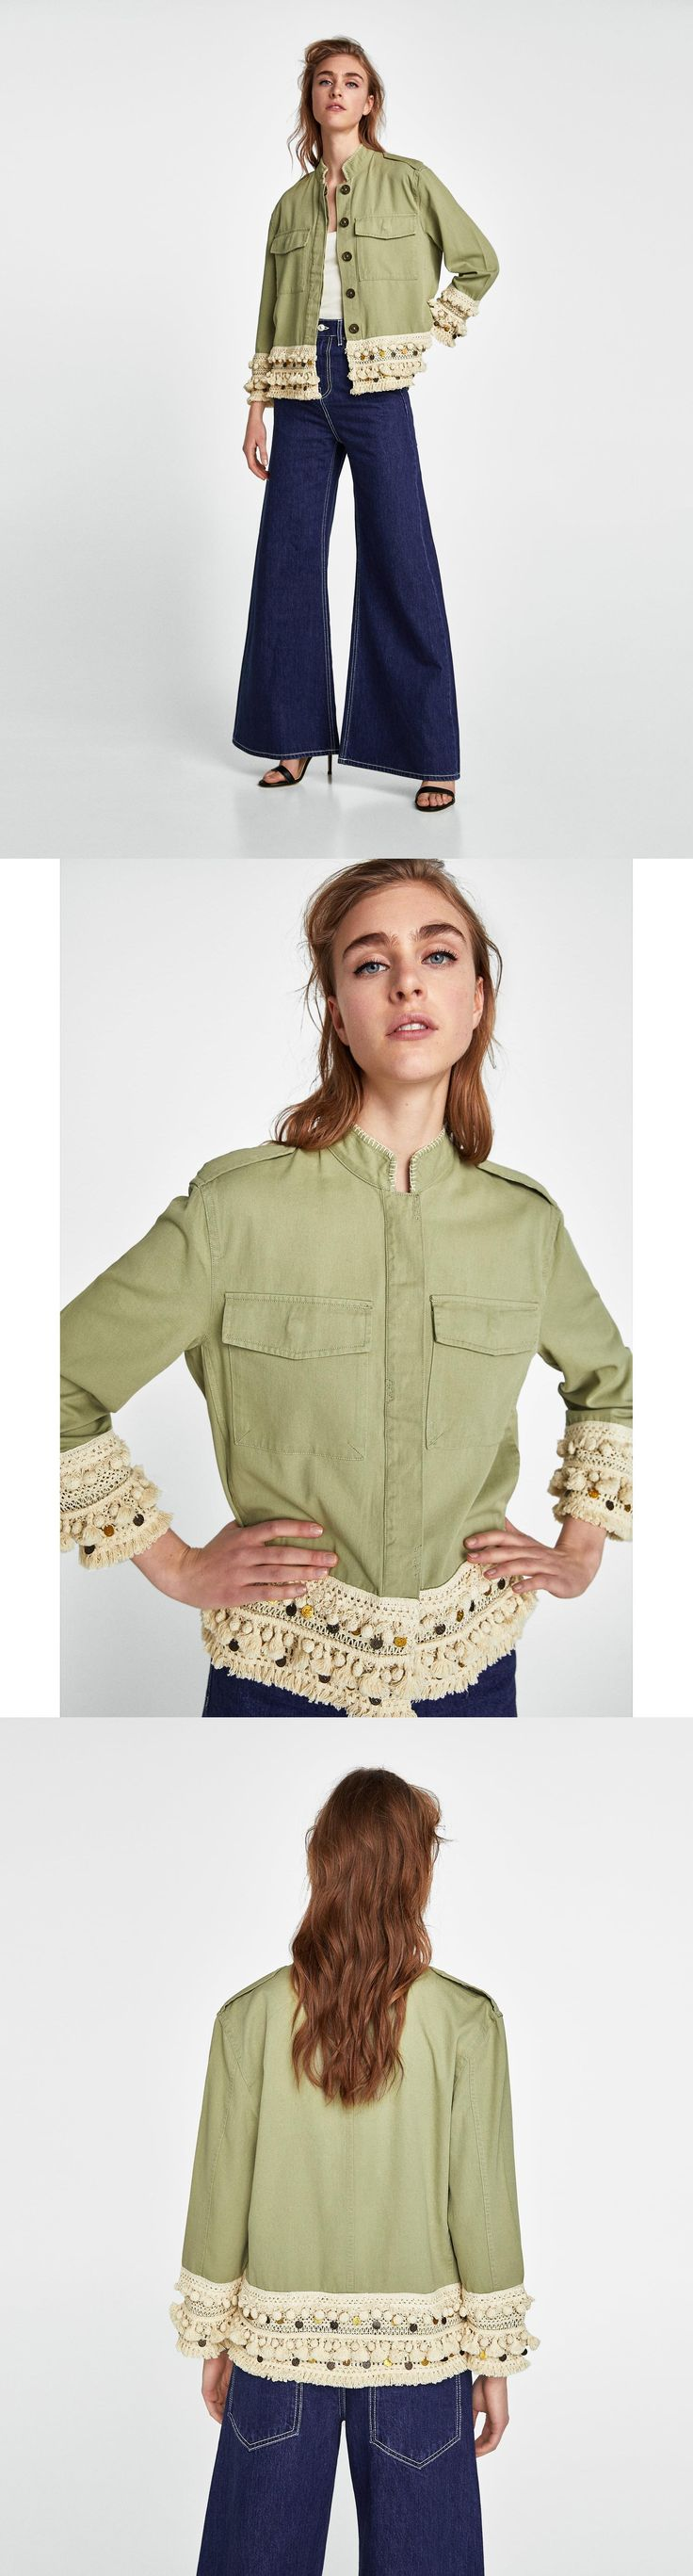 Short Parka With Tassels // 69.90 USD // Zara // Parka with high collar and long sleeves with contrasting tassels along the hem and cuffs. Front patch pockets with flaps and side in-seam pockets. A-line silhouette. Fastens in the front with buttons hidden by a placket. HEIGHT OF MODEL: 179 CM / 5′ 10″